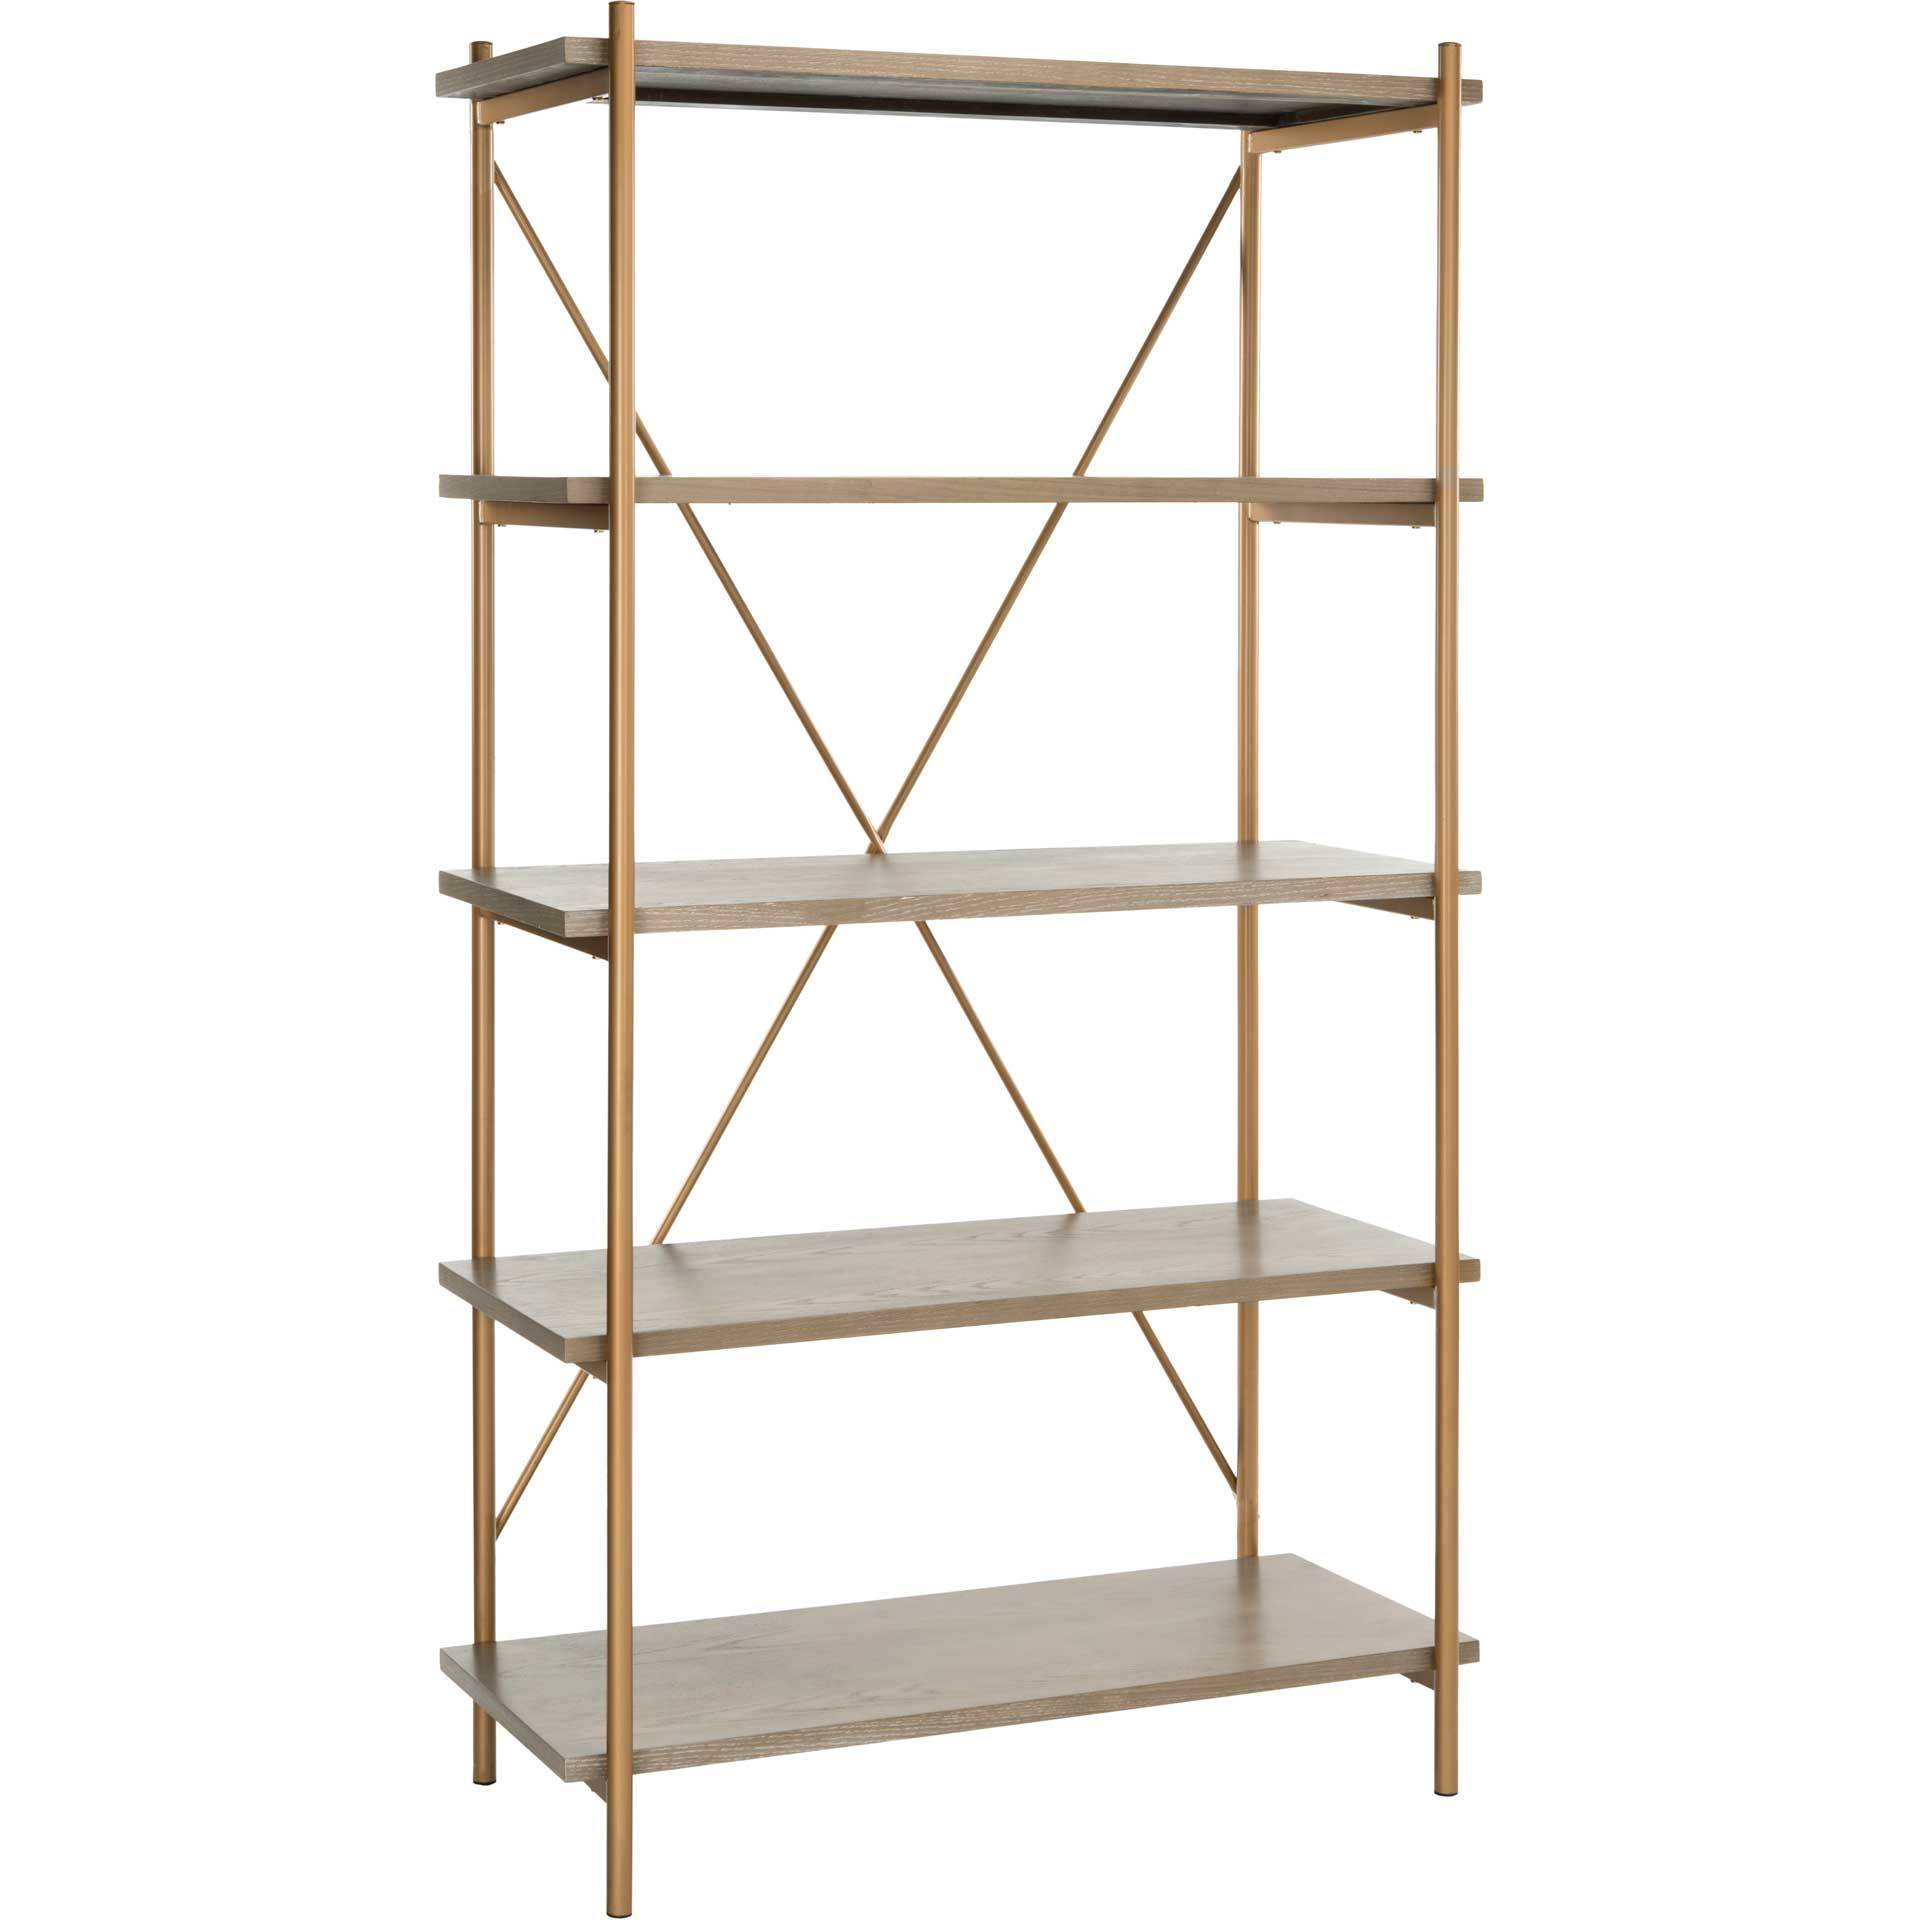 Ridge 5 Tier Etagere Gold Liquid/Rustic Oak